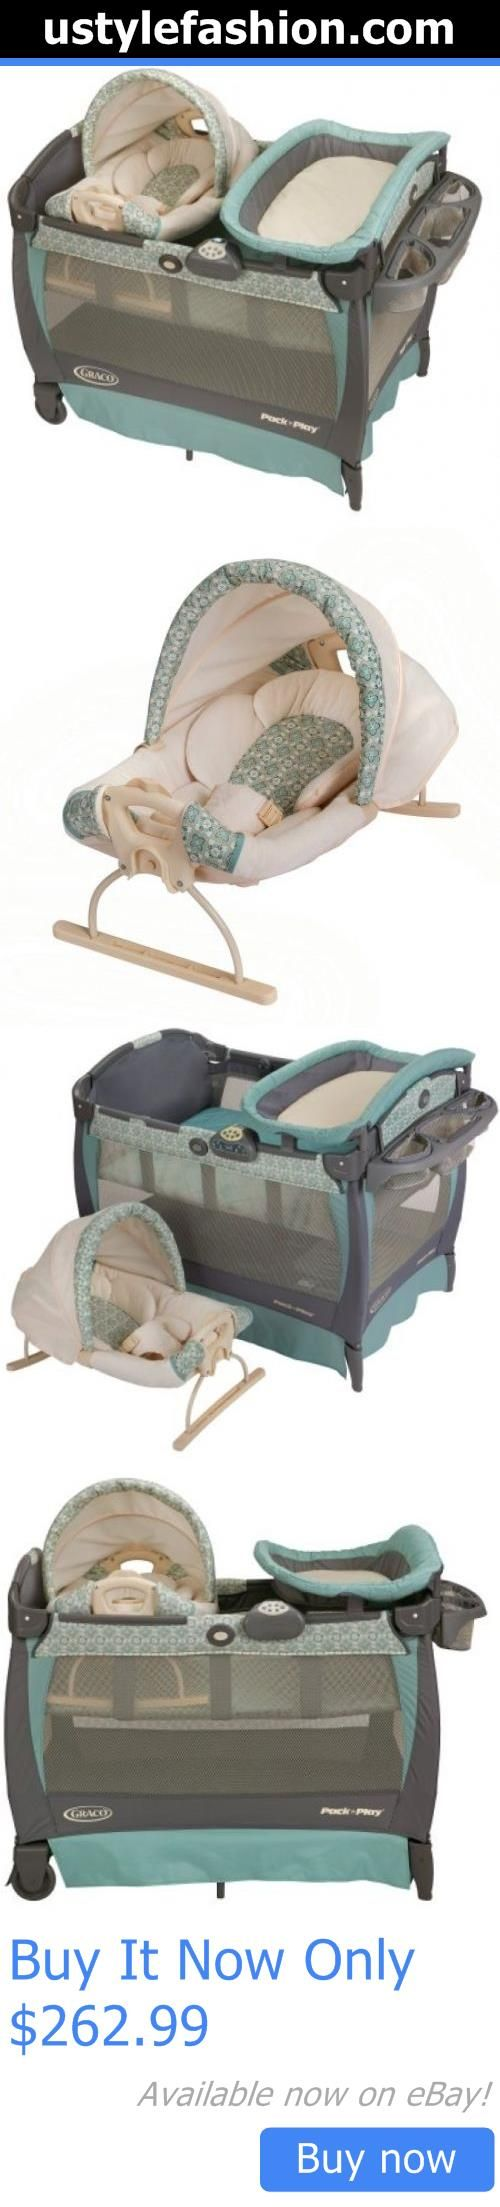 Baby Play pens and play yards: New Graco Pack N Play Playard With Cuddle  Cove